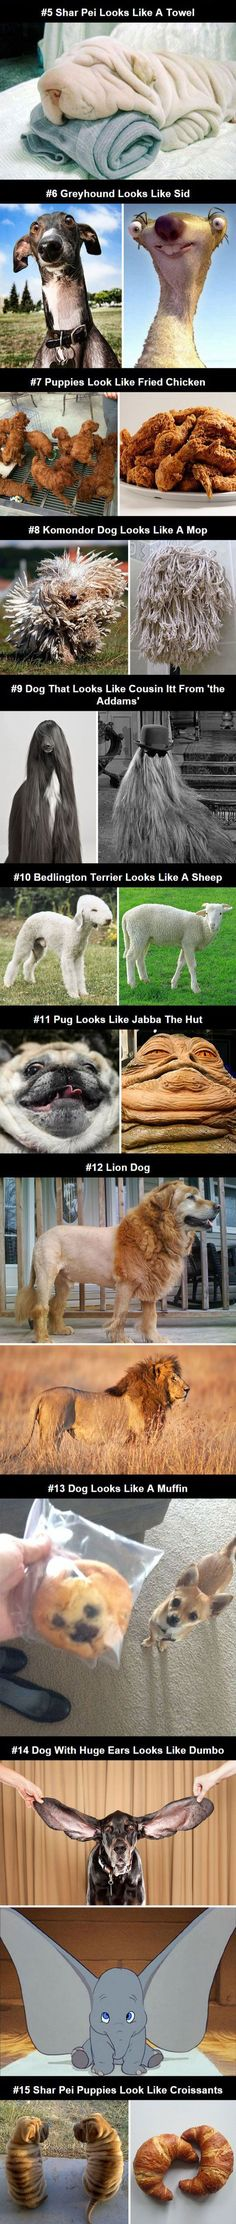 Dogs That Look Like Other Things: